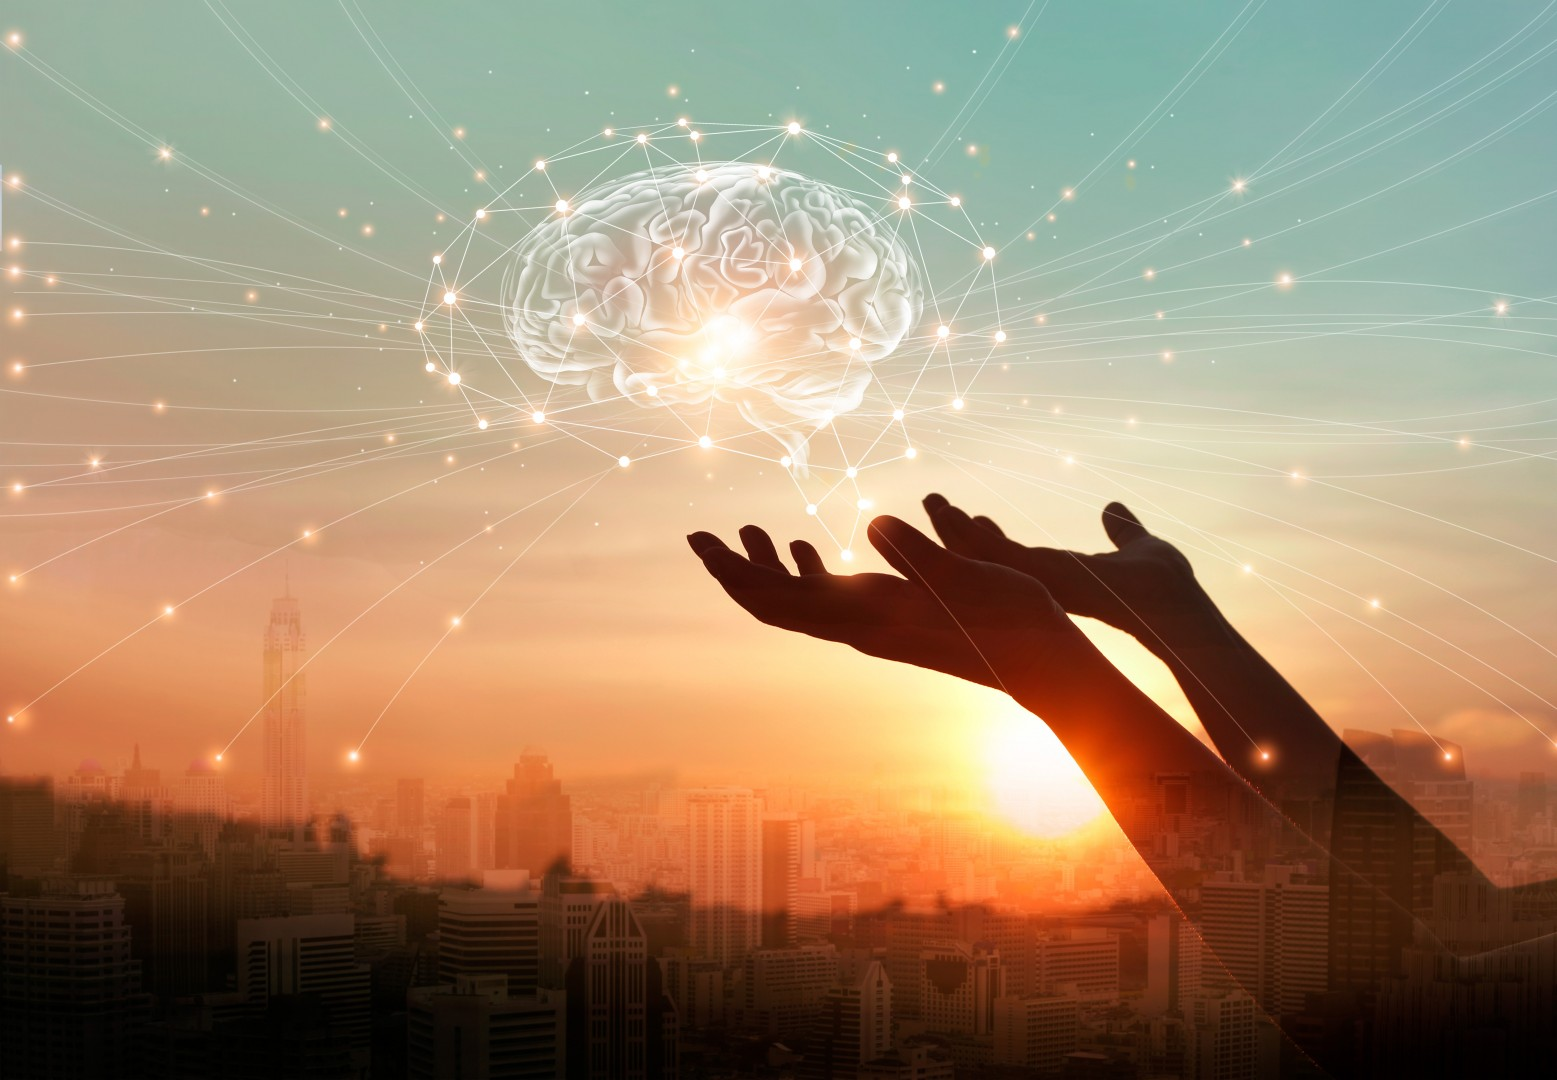 Six Science Superstars Palms Reaching To Brain With Light and Network Connections Science